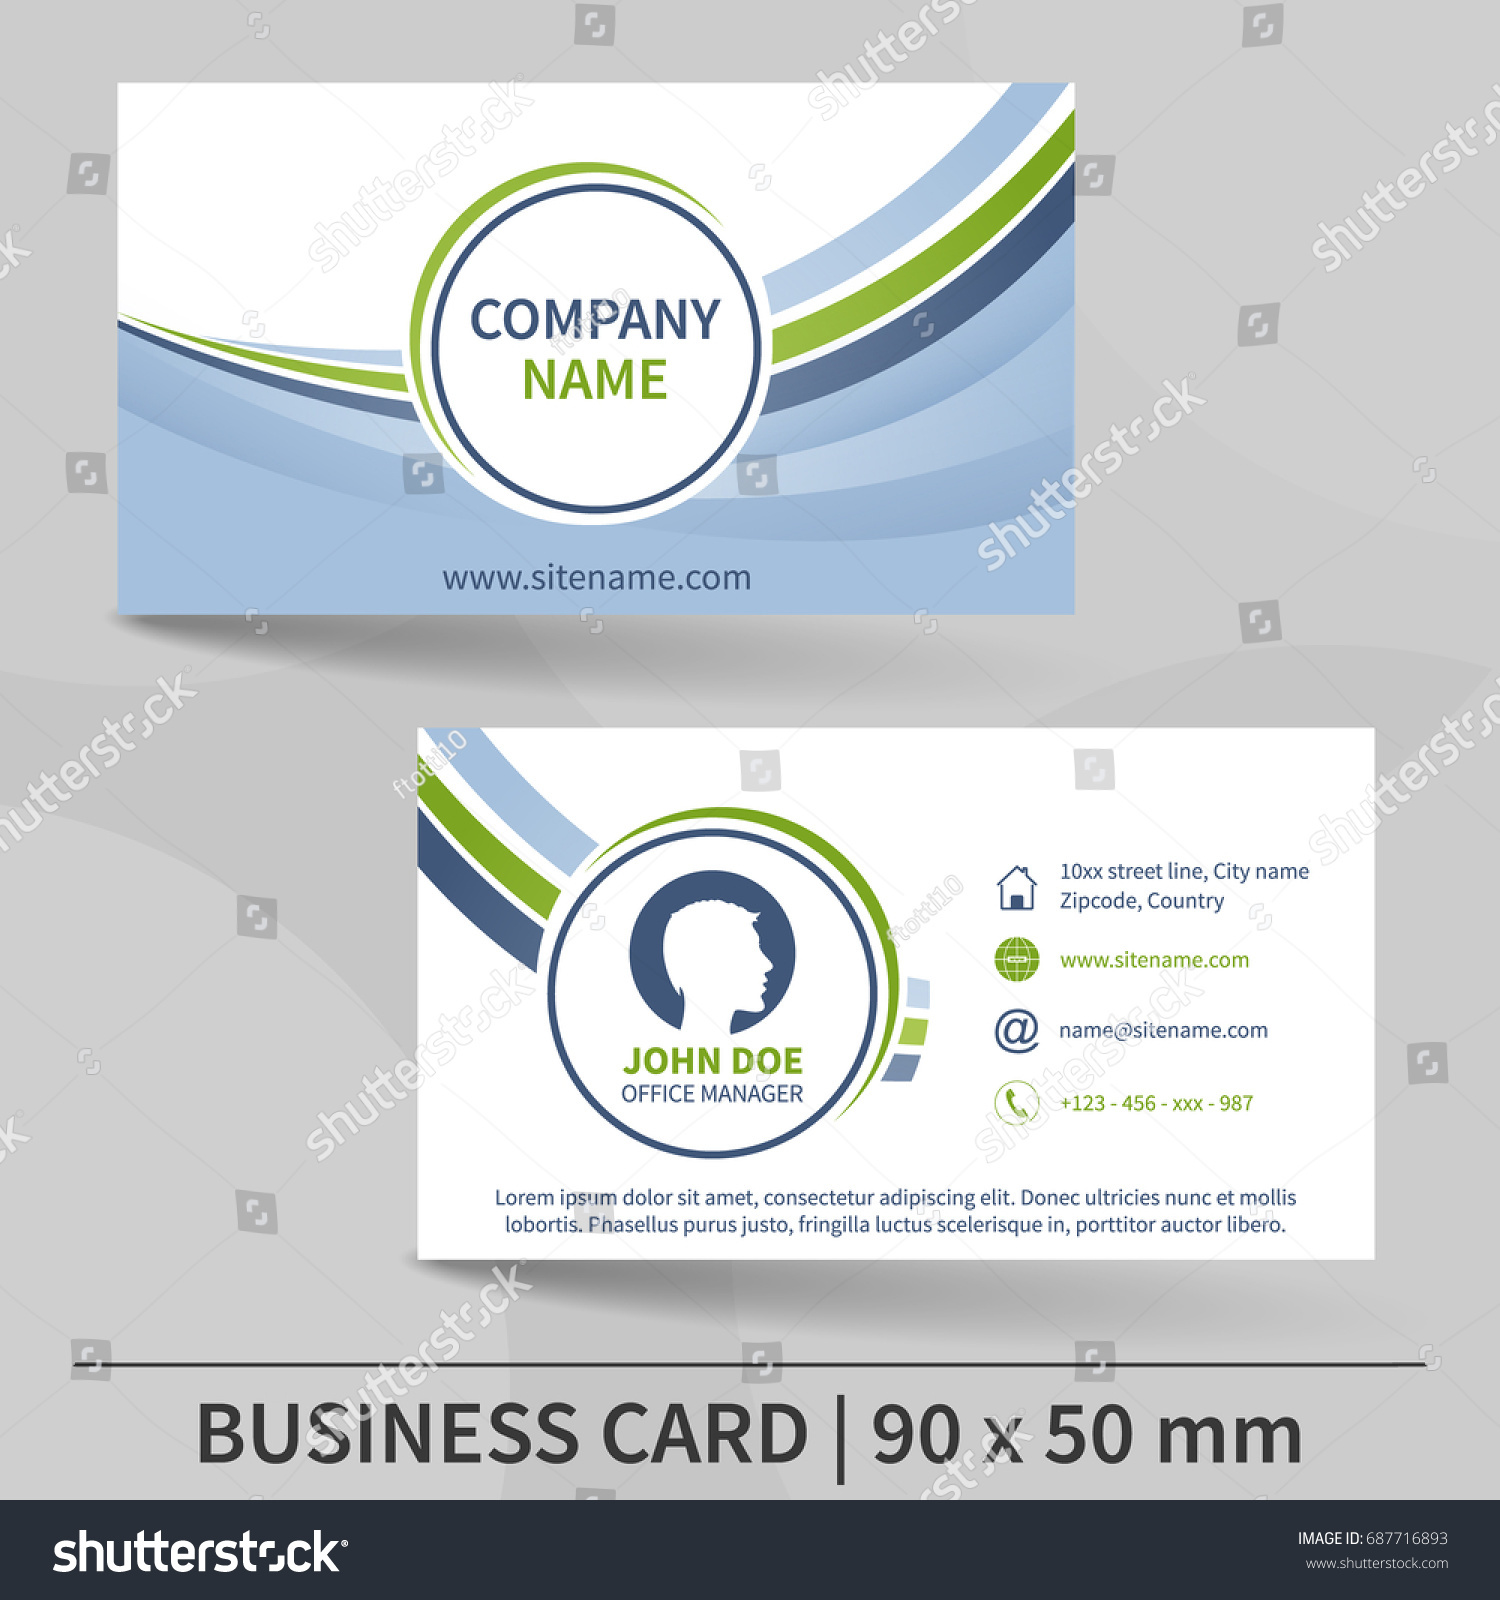 Business card template design your individual stock vector business card template design for your individual or business presentation suitable for printing magicingreecefo Gallery